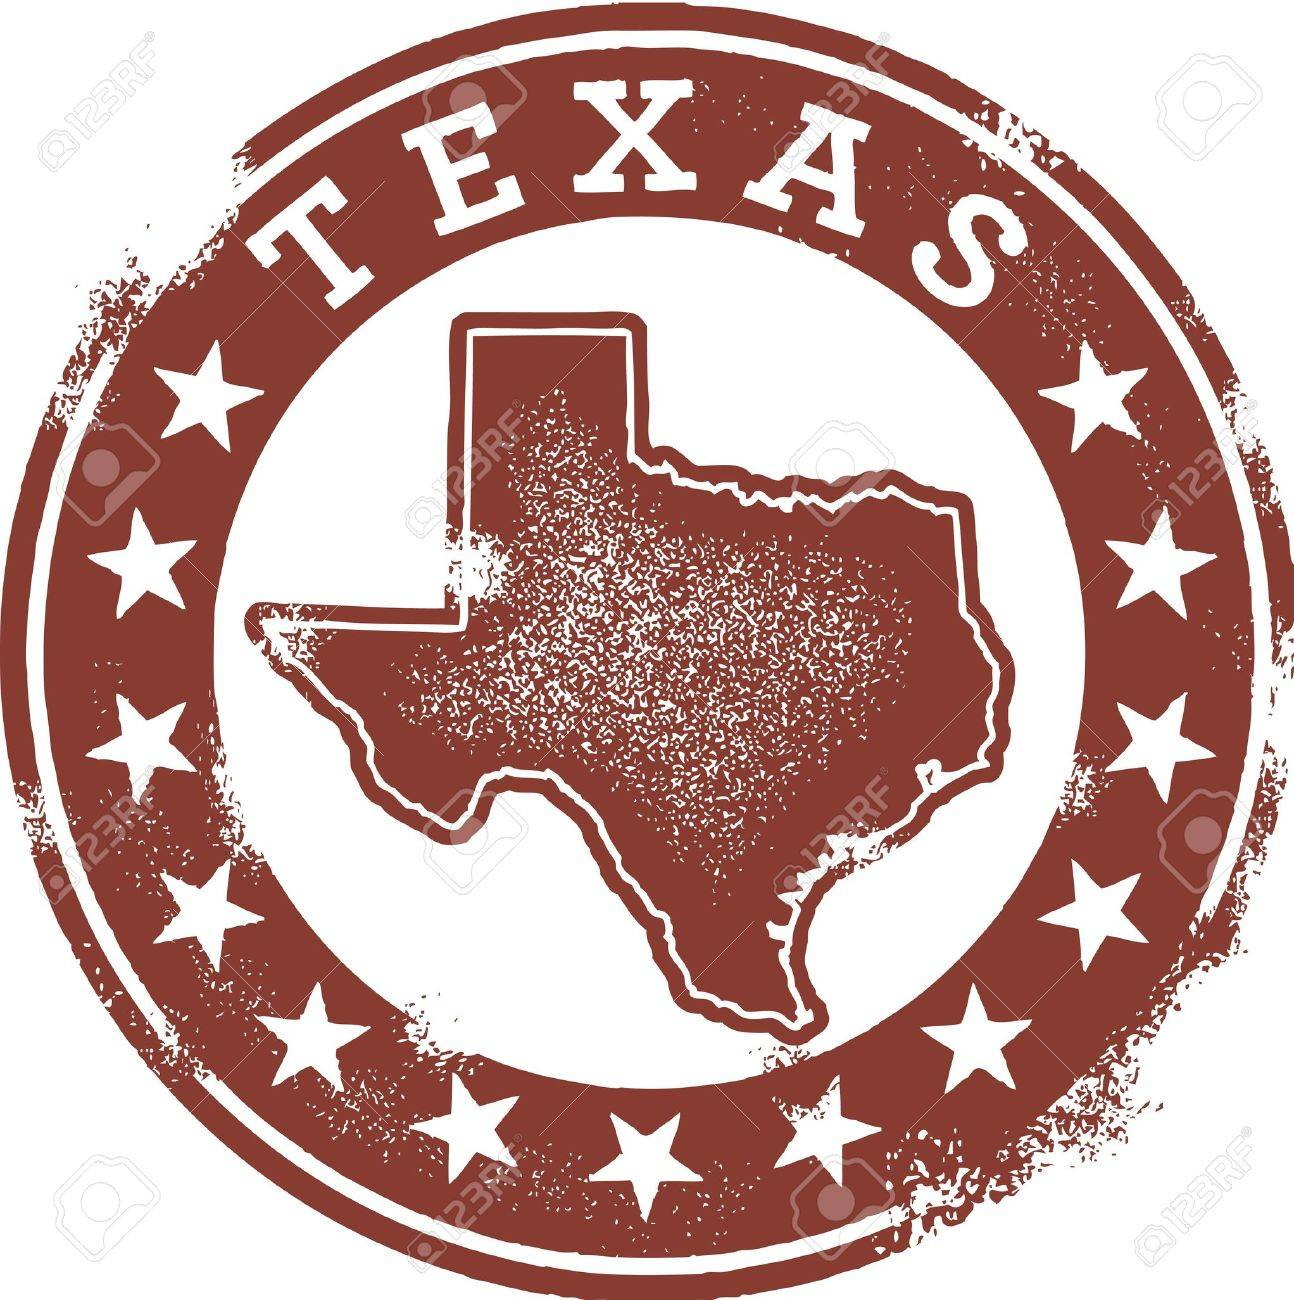 Distressed Vintage Texas State Stamp Stock Vector - 14404800